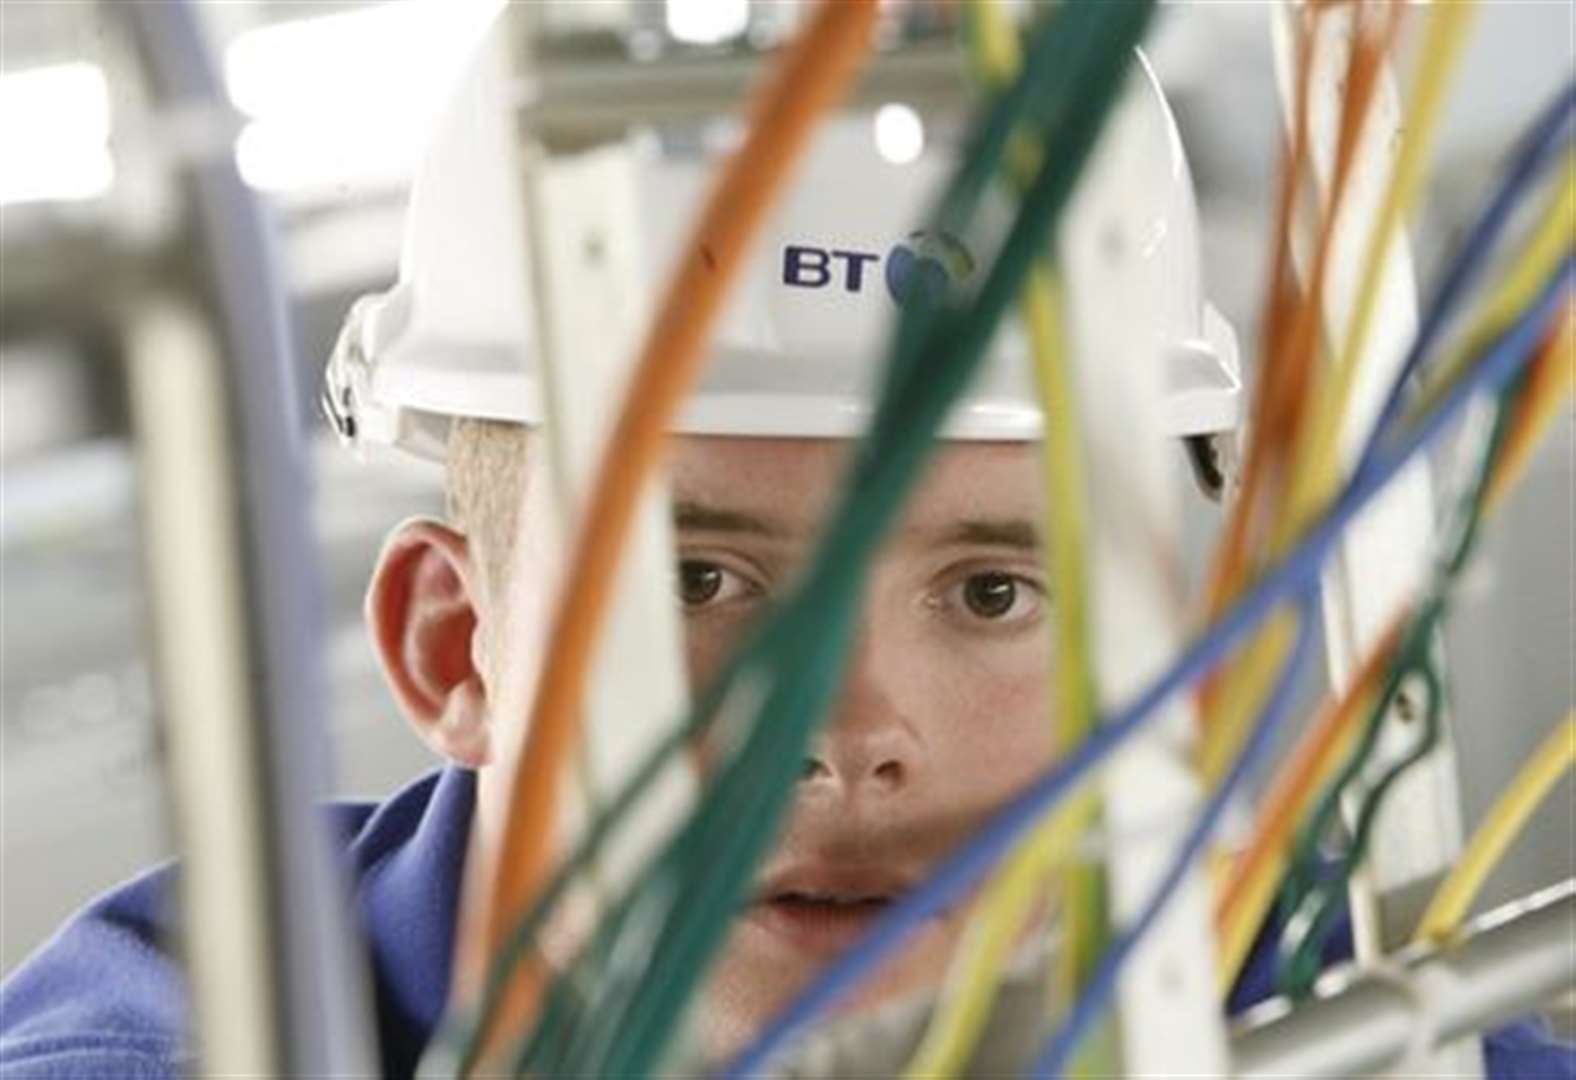 BT pledge to keep people connected at vital time